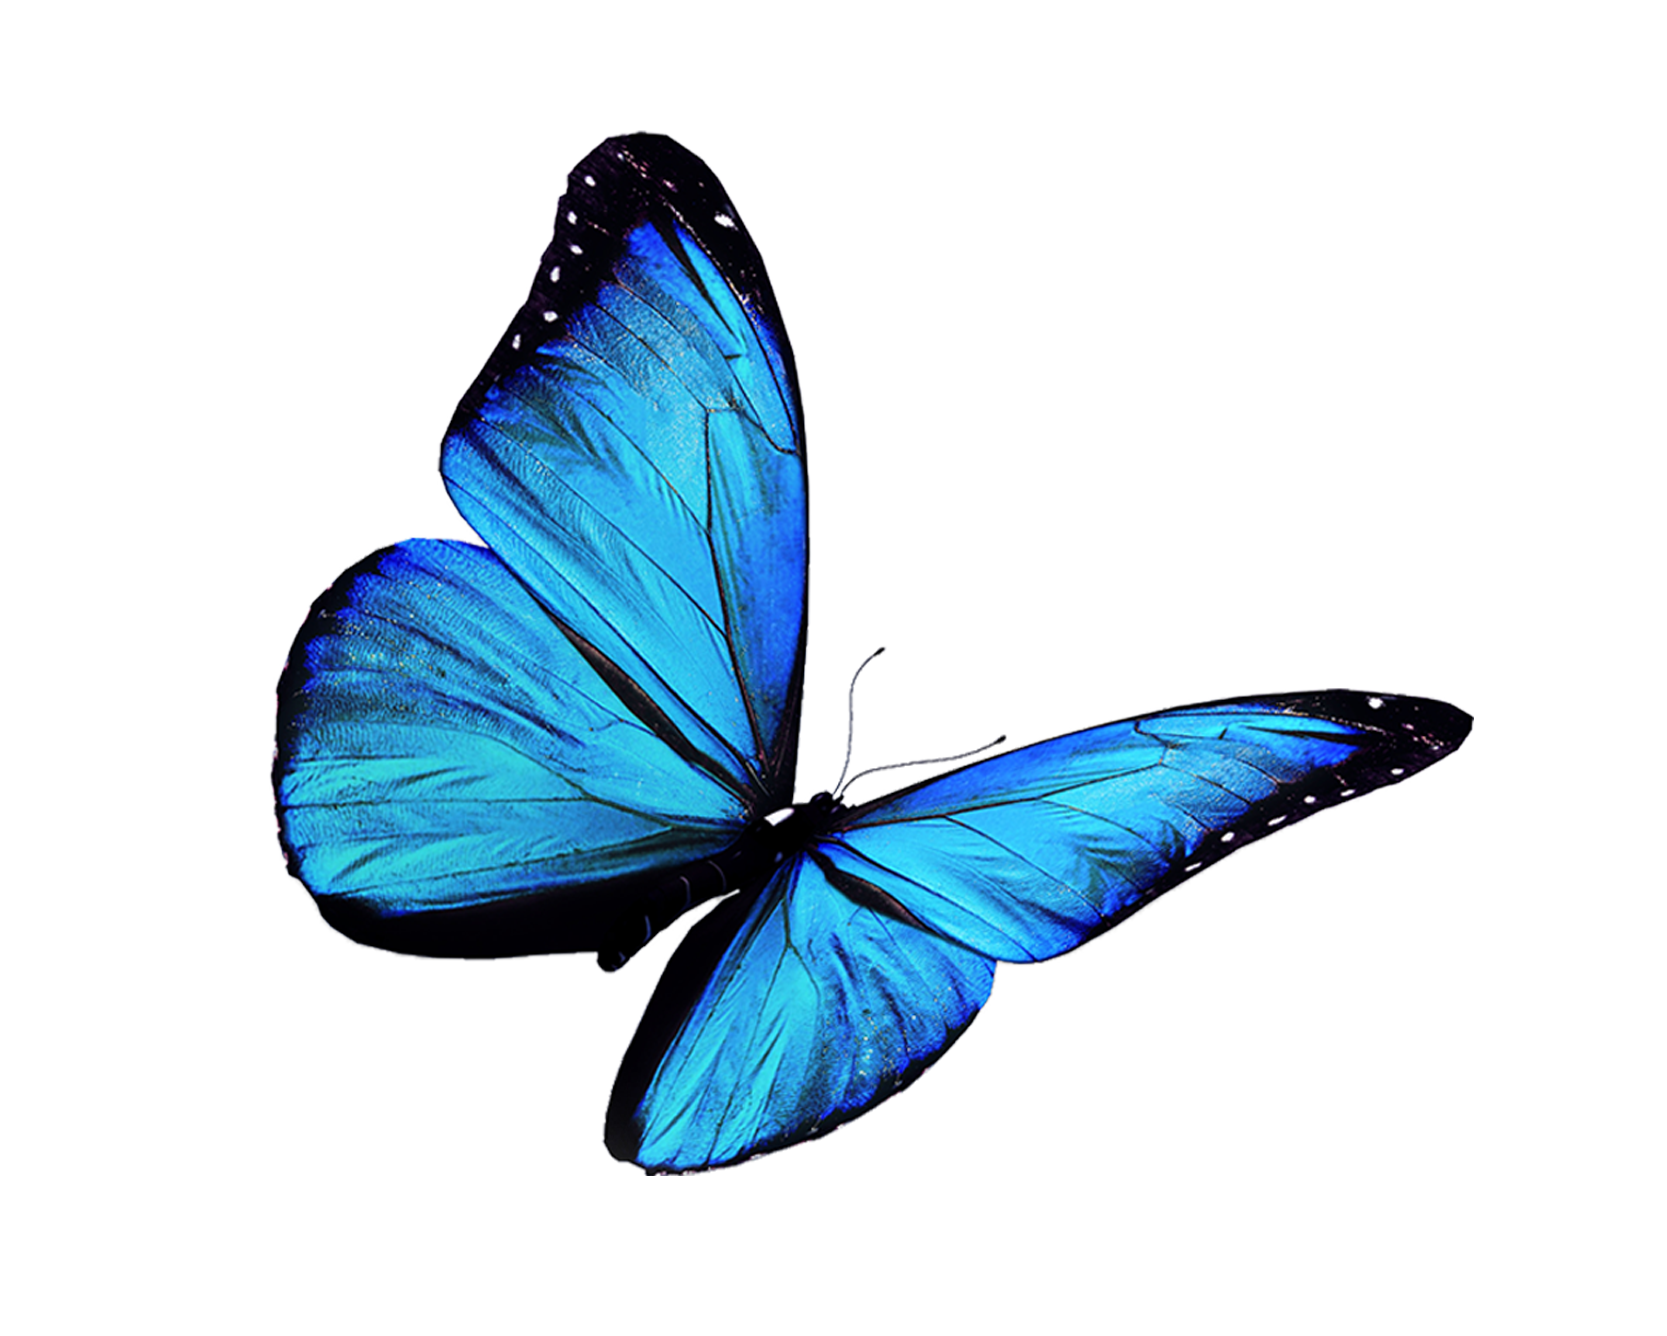 Flight-of-Passion-butterfly